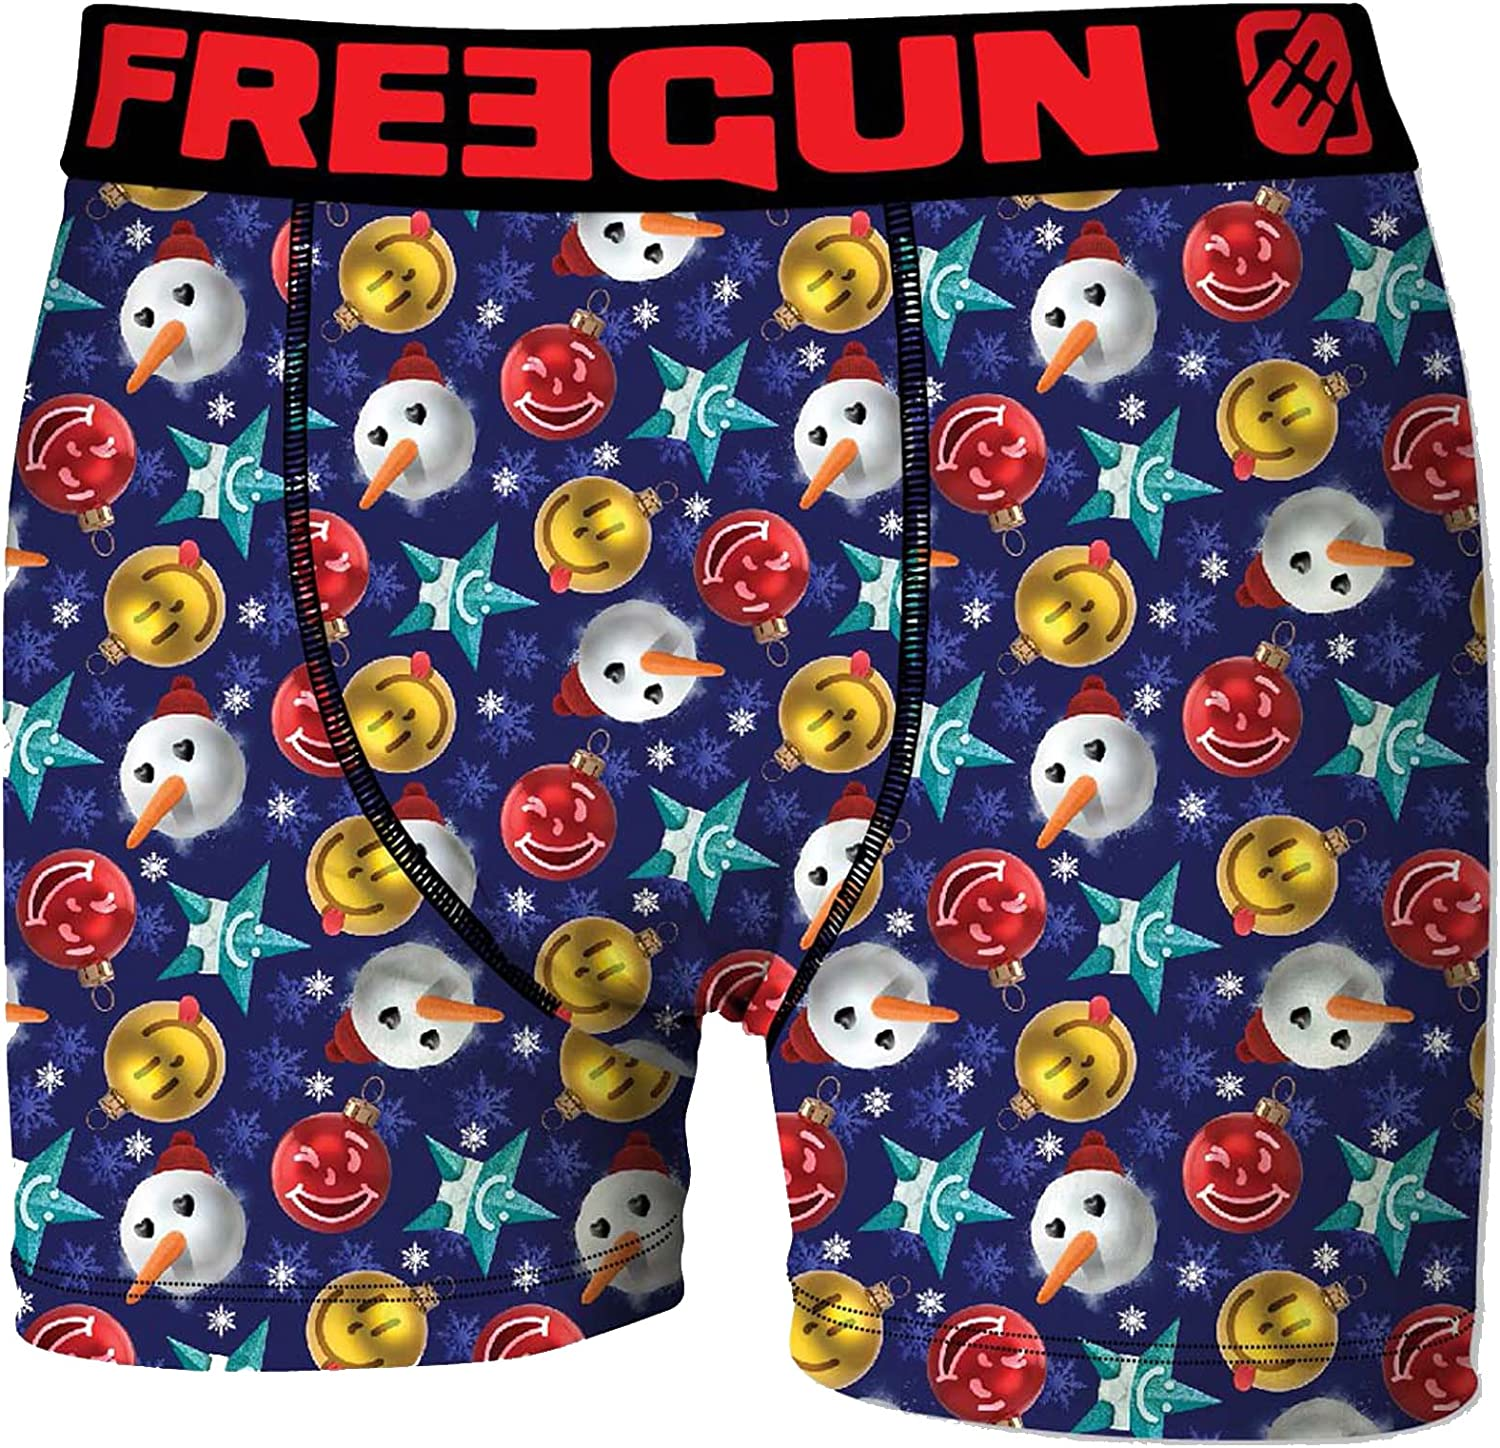 Assortment Models Photos According to Arrivals Boxer Merry Christmas for Mens in Microfiber FREEGUN